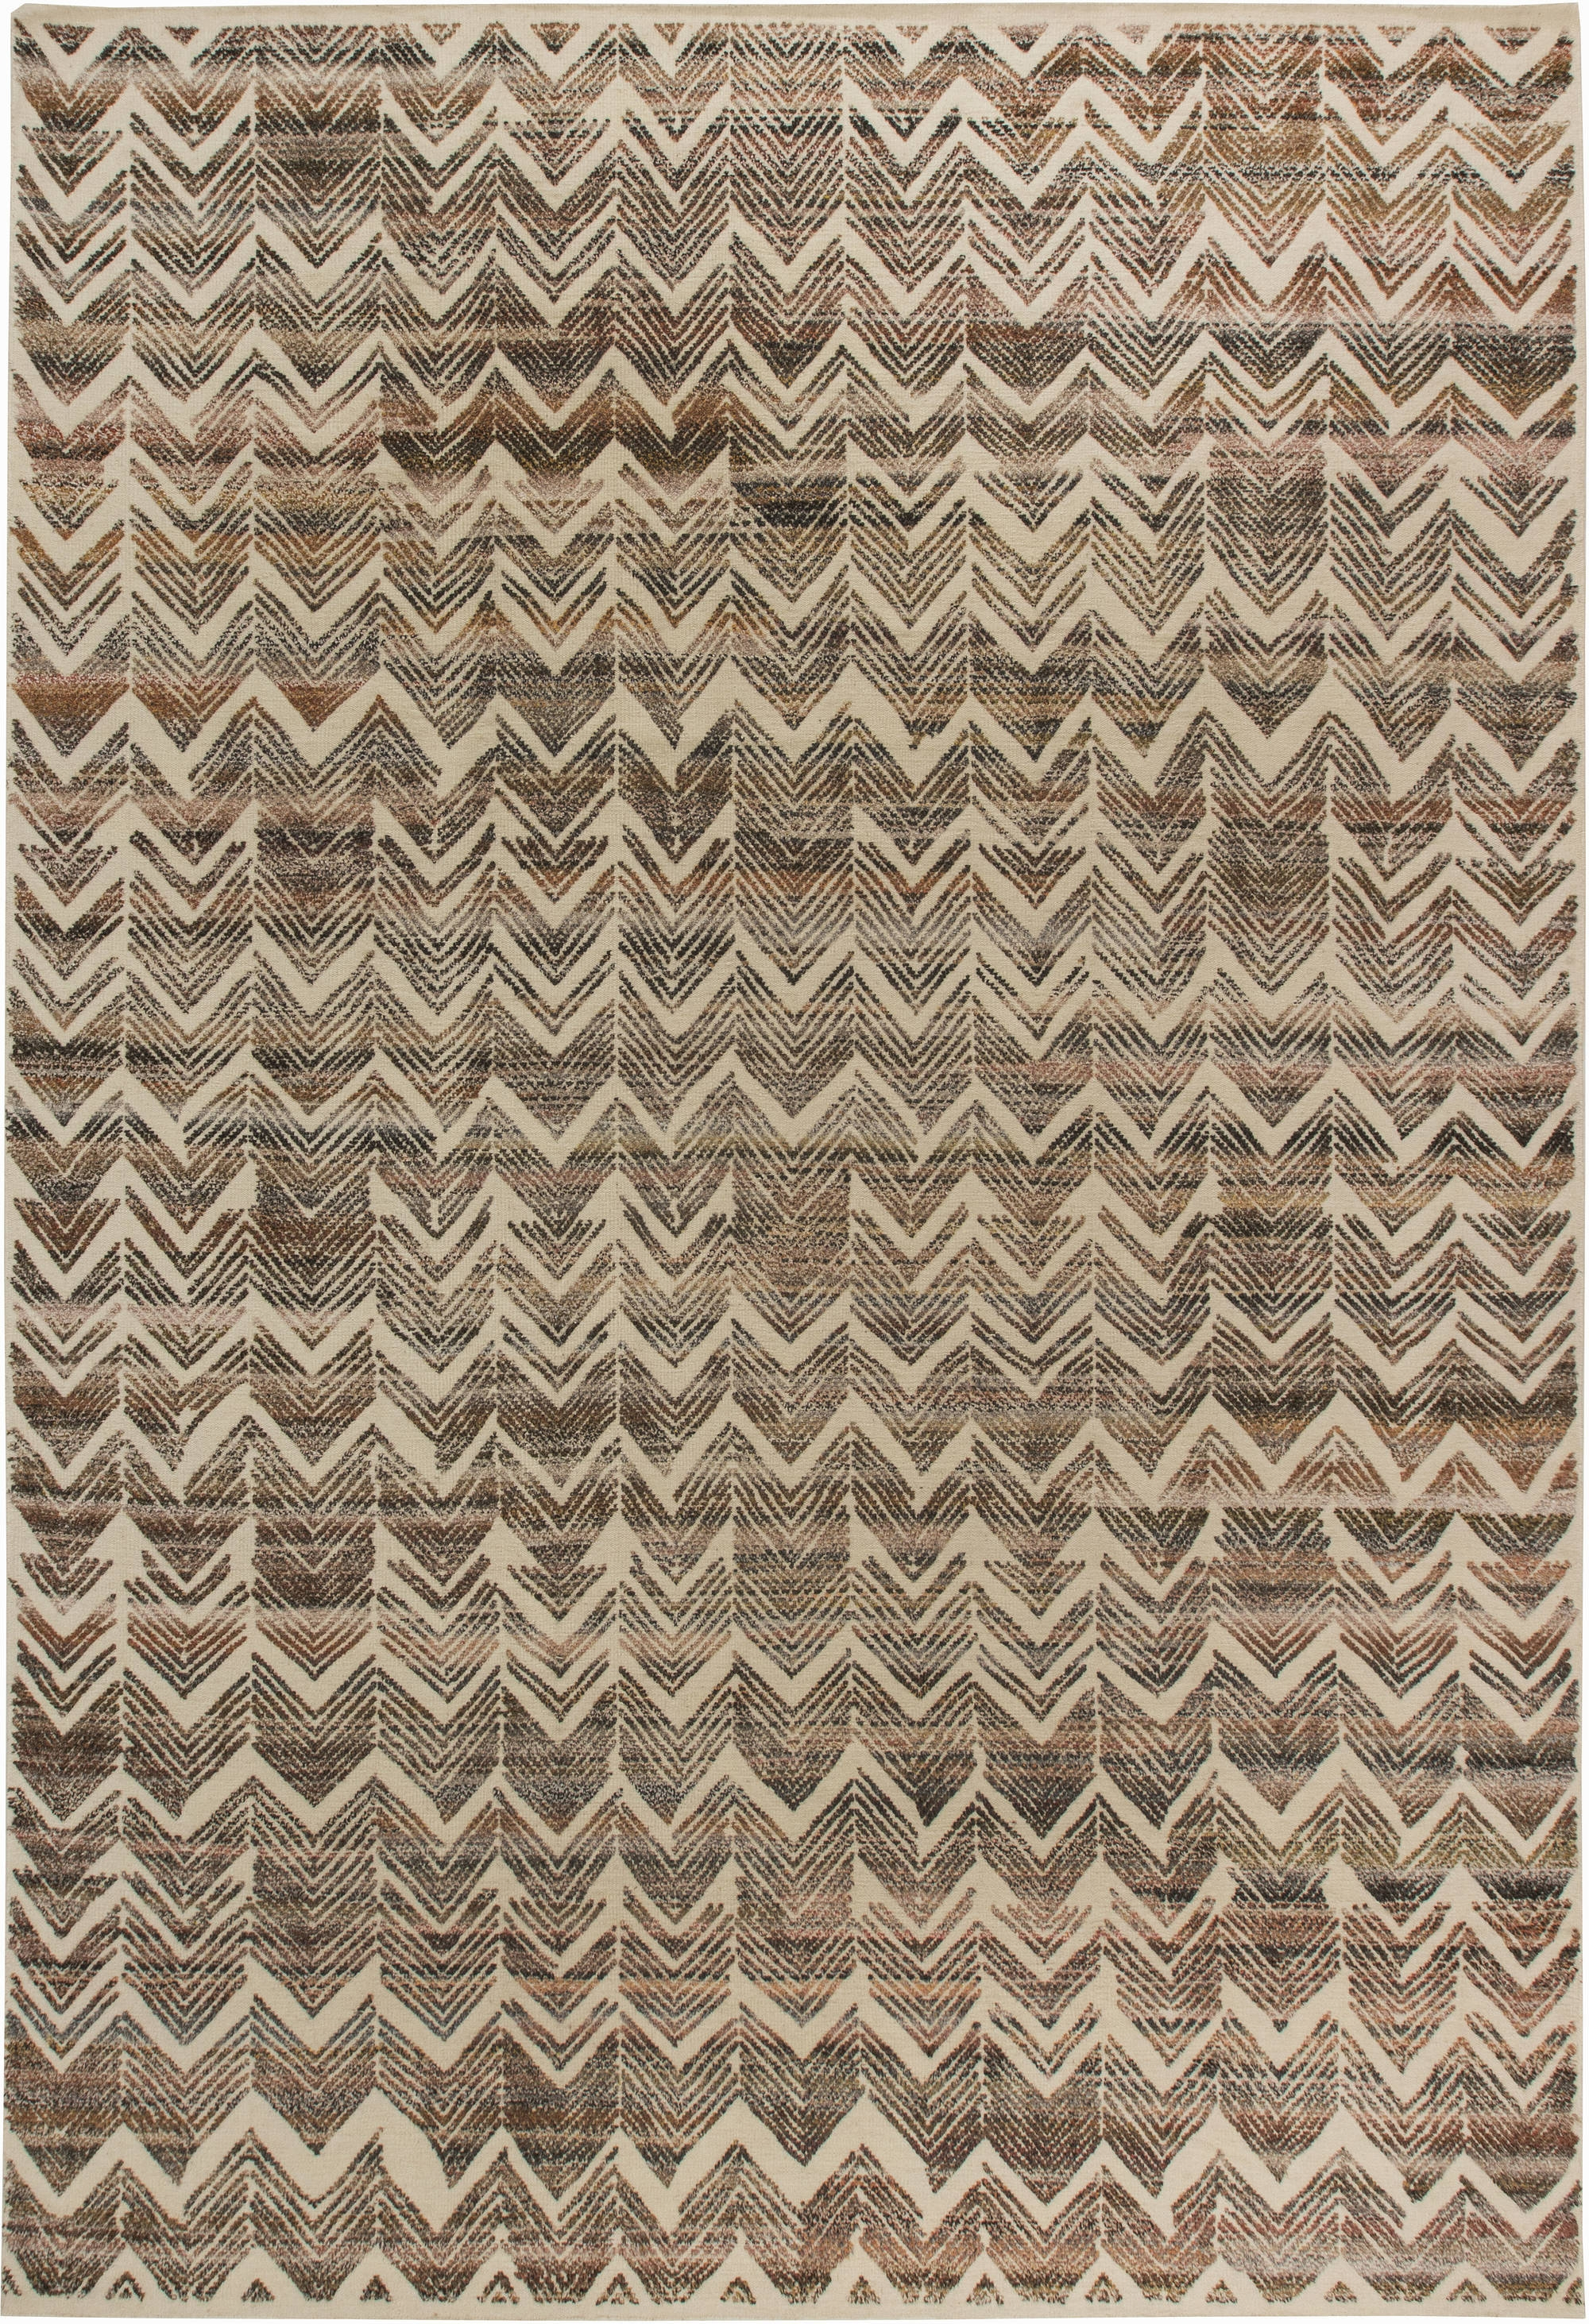 Modern Contemporary Rugs And Carpets In New York Within Contemorary Rugs (Image 11 of 15)